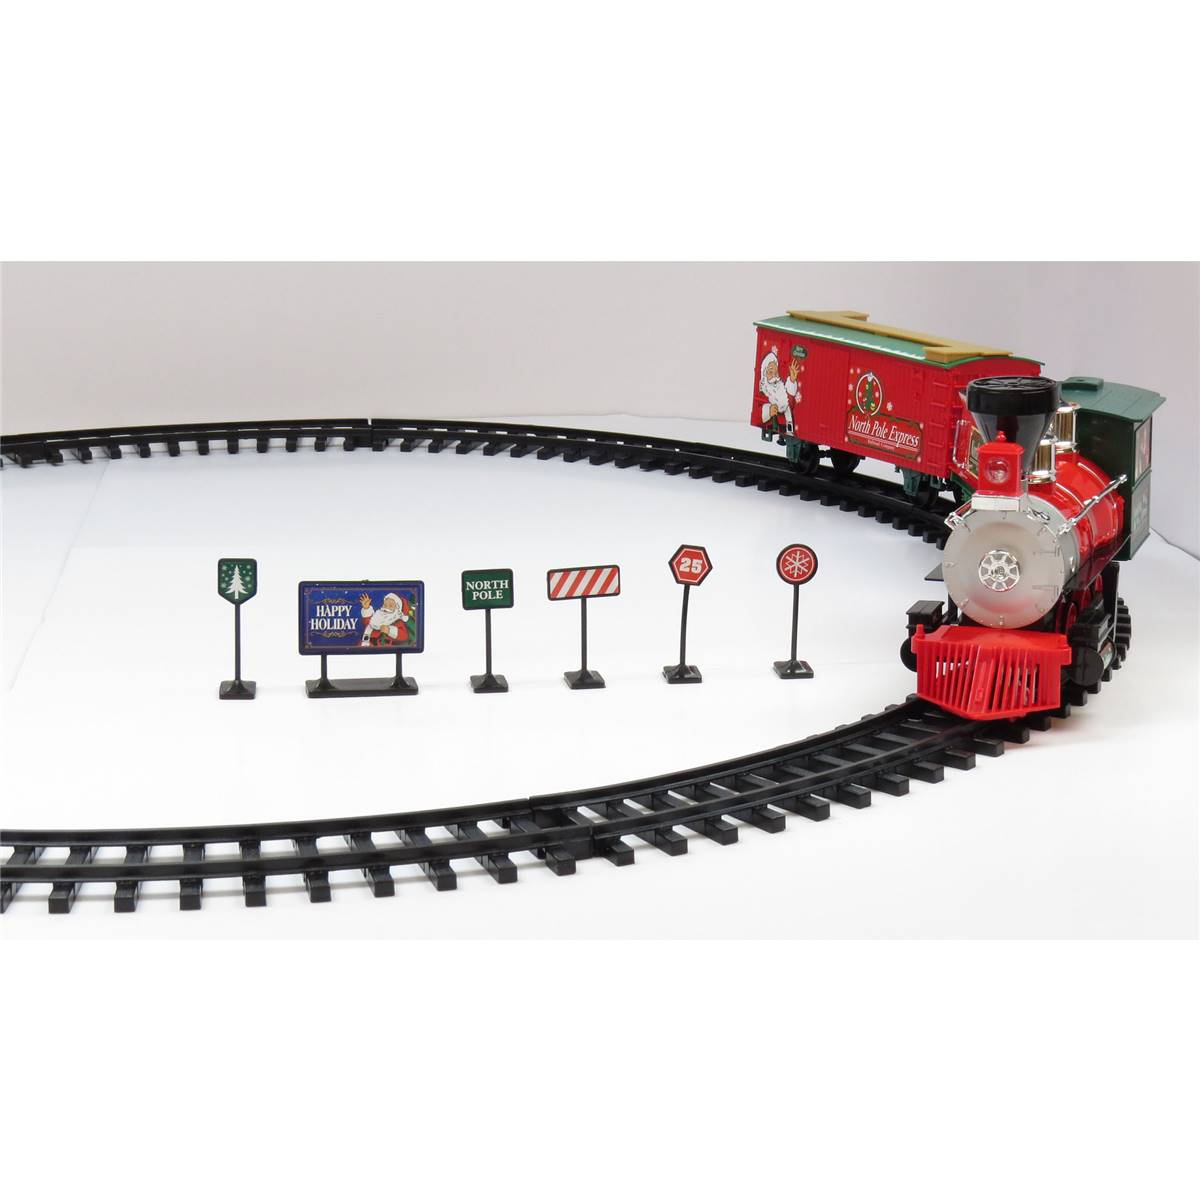 Seemly Train Set Train Set Chums Train Sets Under Tree Uk Train Set ...